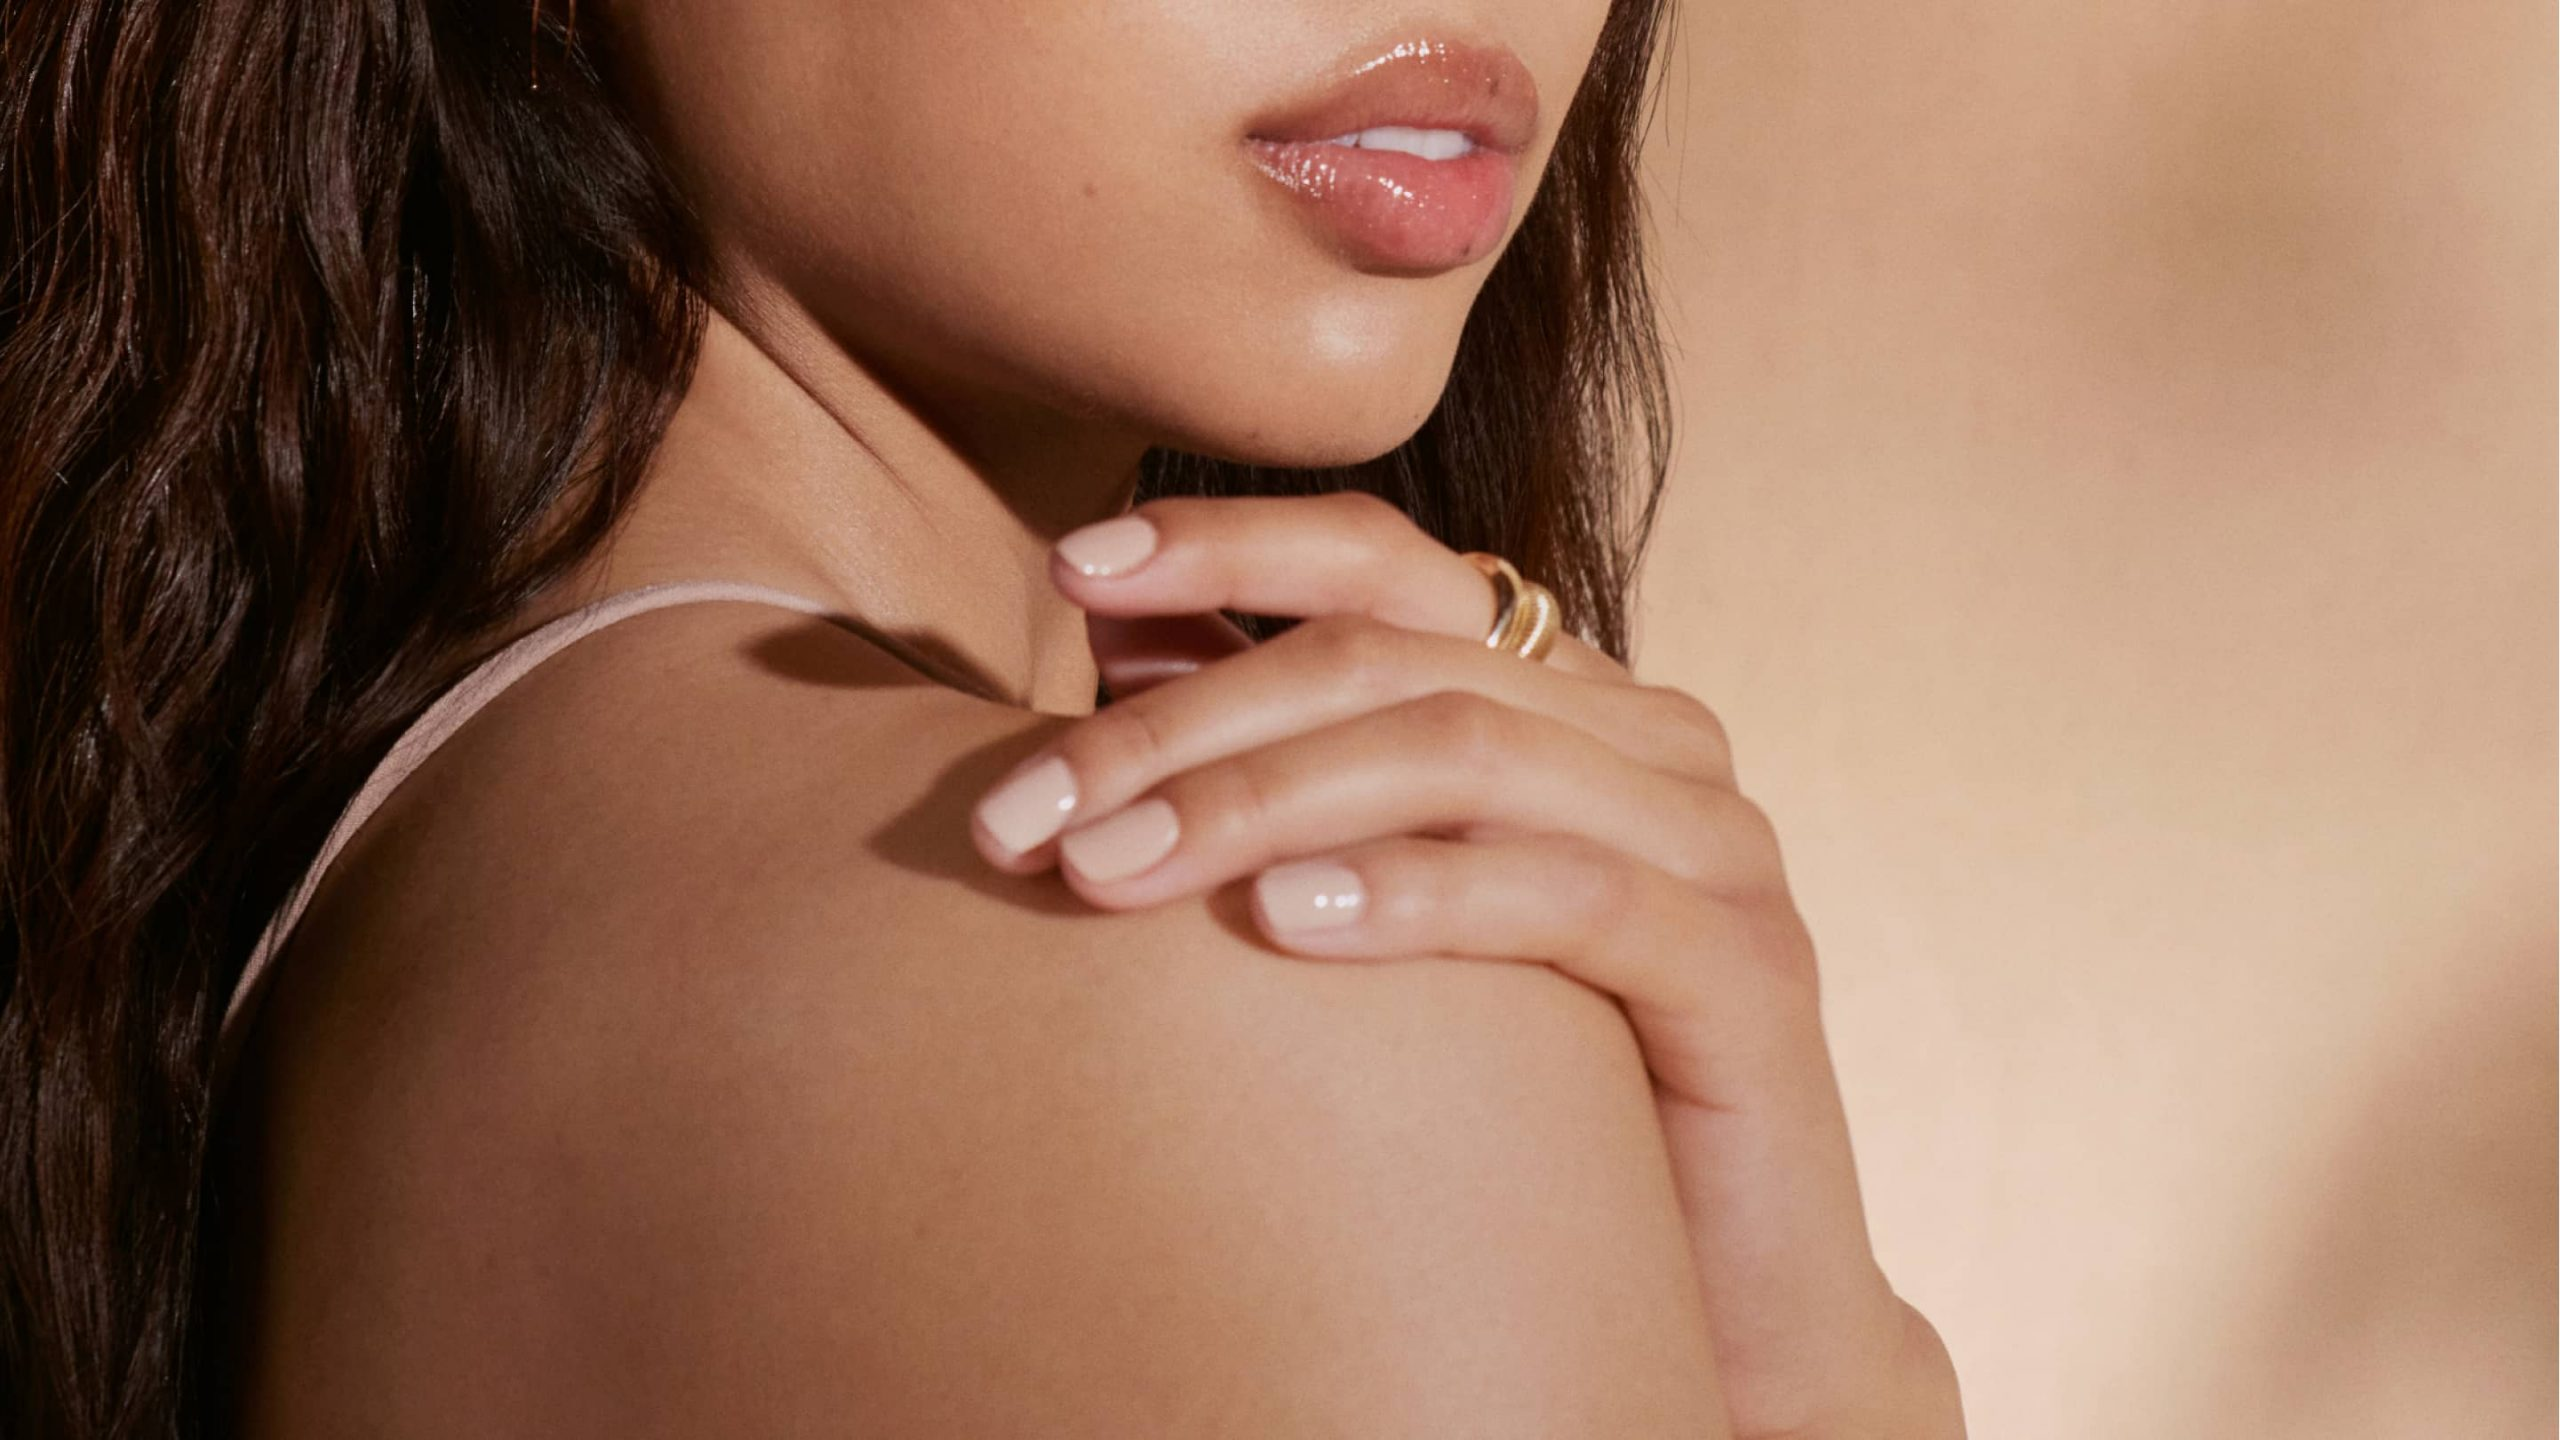 Are You at Risk for Melanoma?